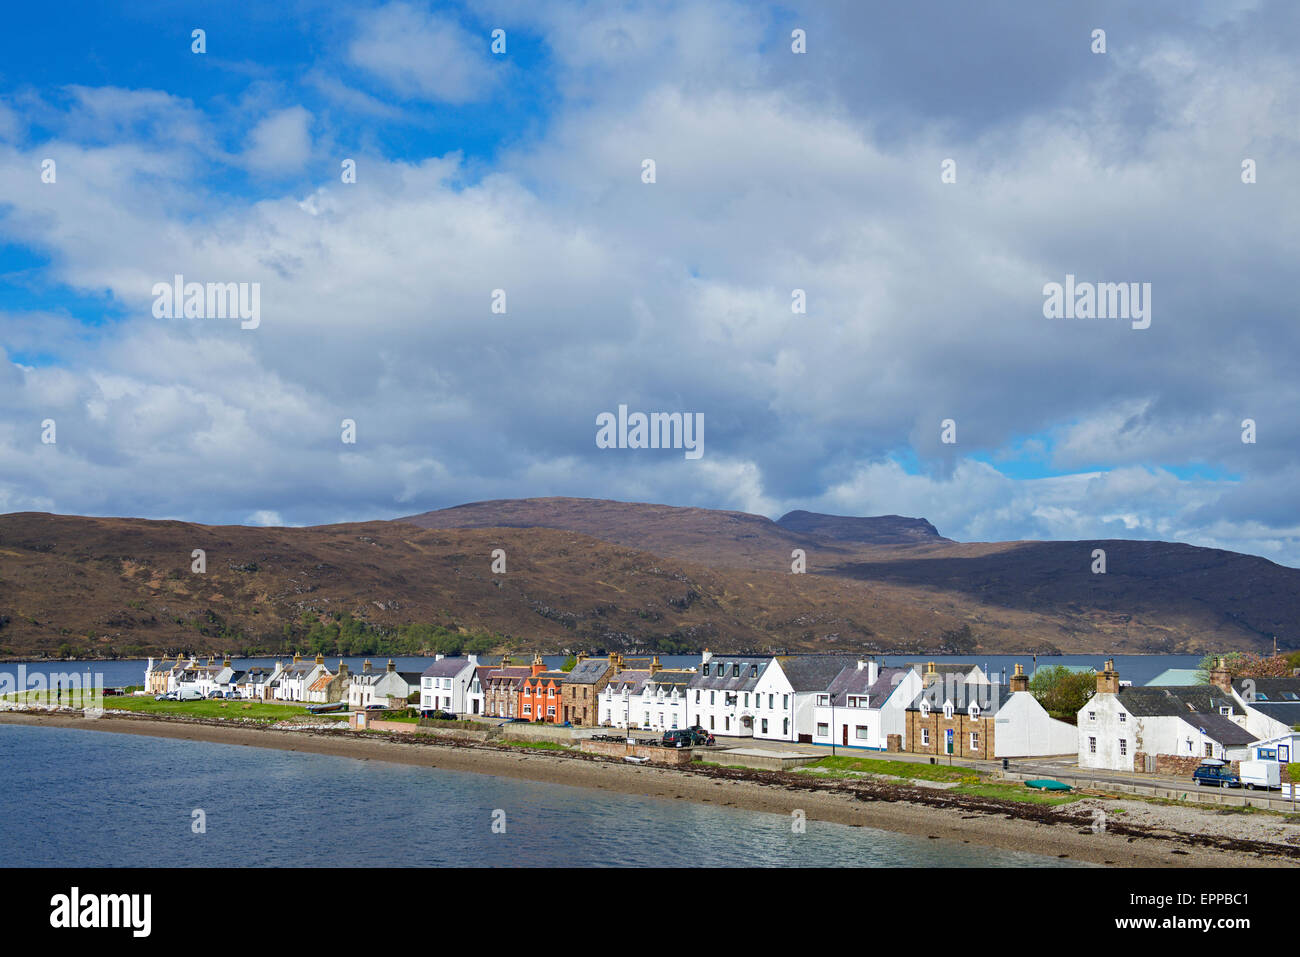 The port of Ullapool, Ross and Cromarty, Scotland UK - Stock Image